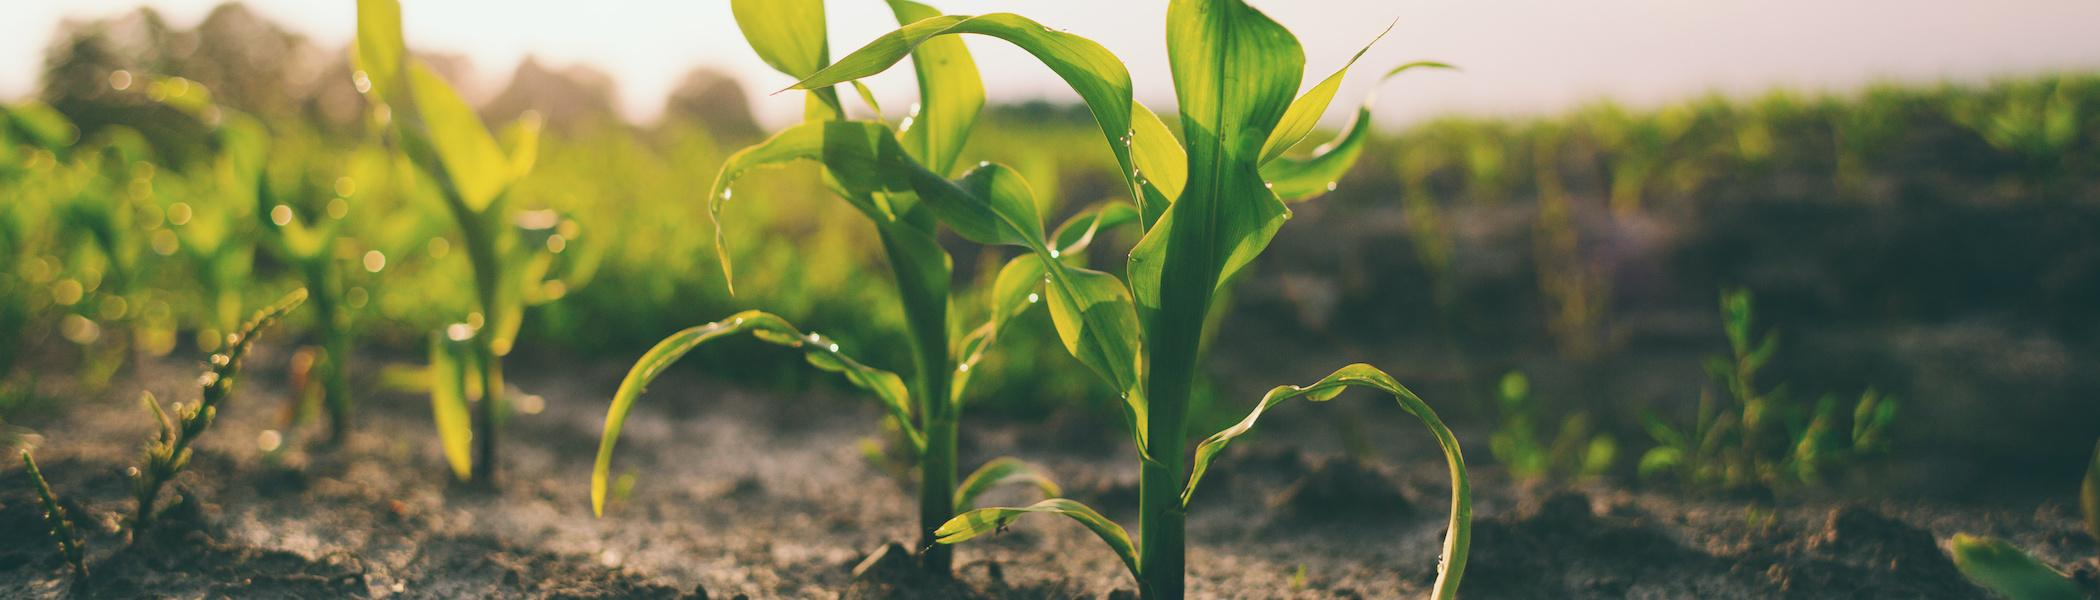 Crops sprouting up from the dirt.